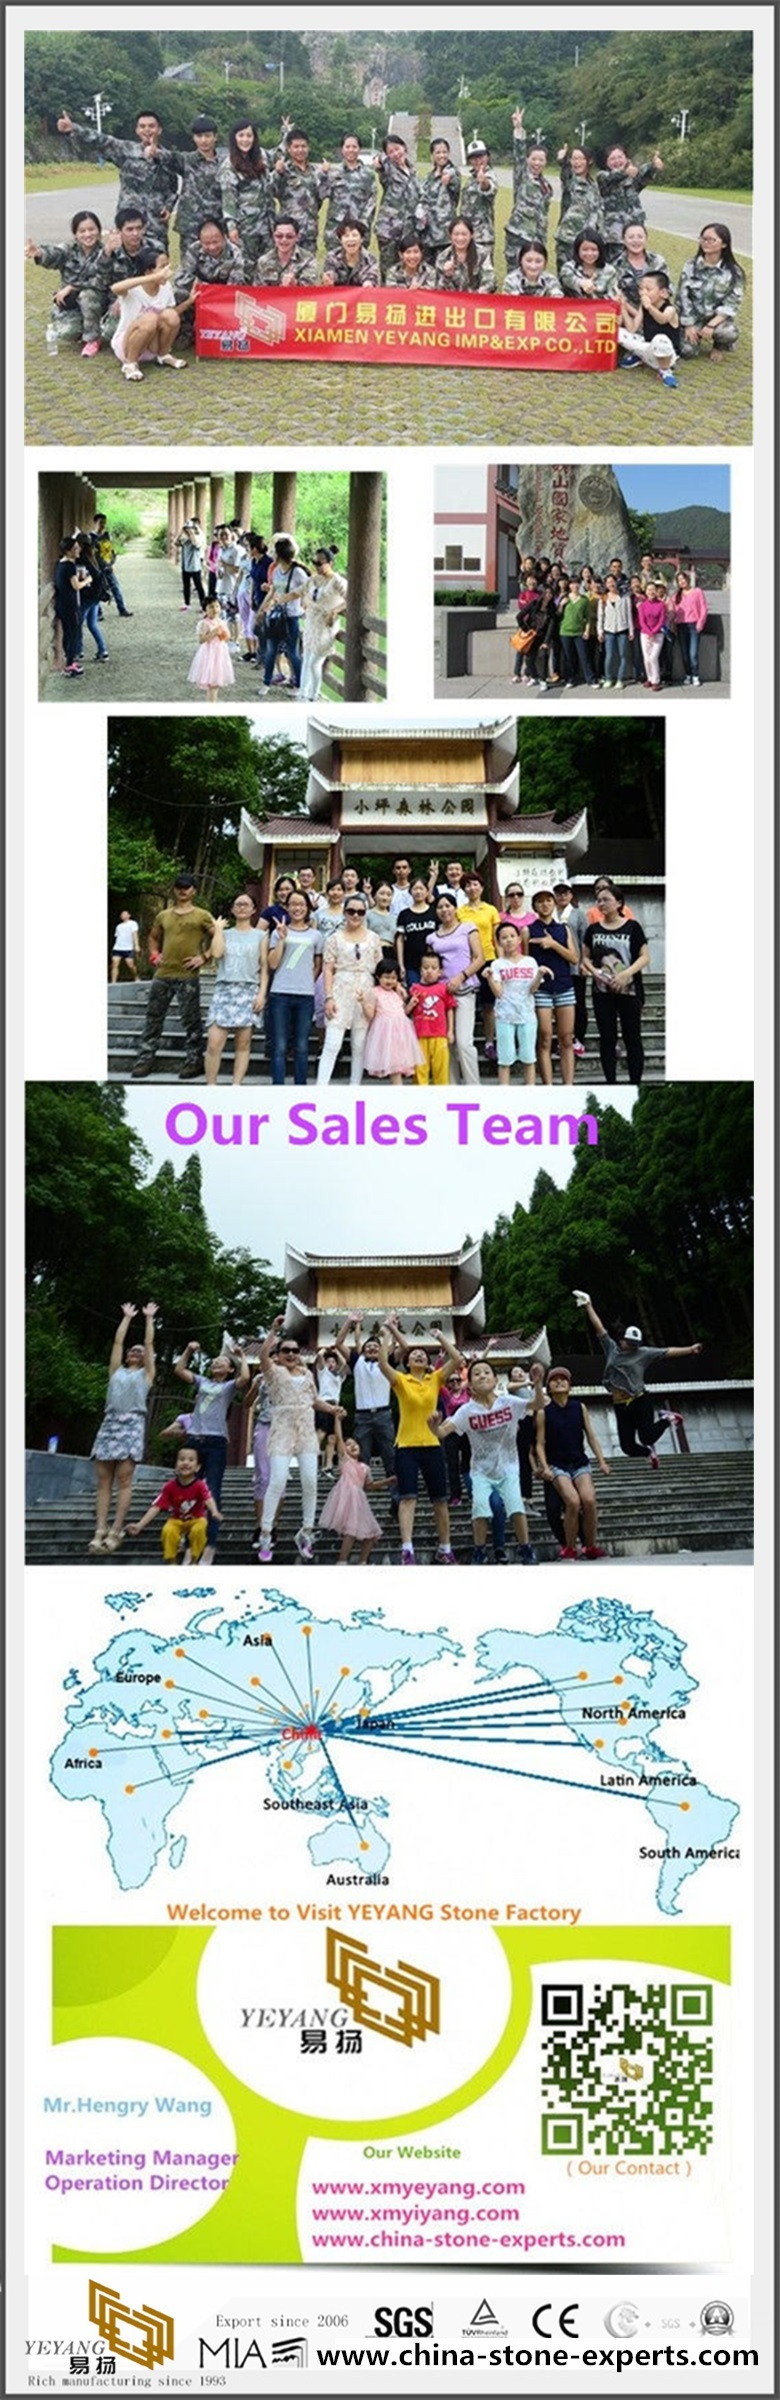 03 Our Sales Team